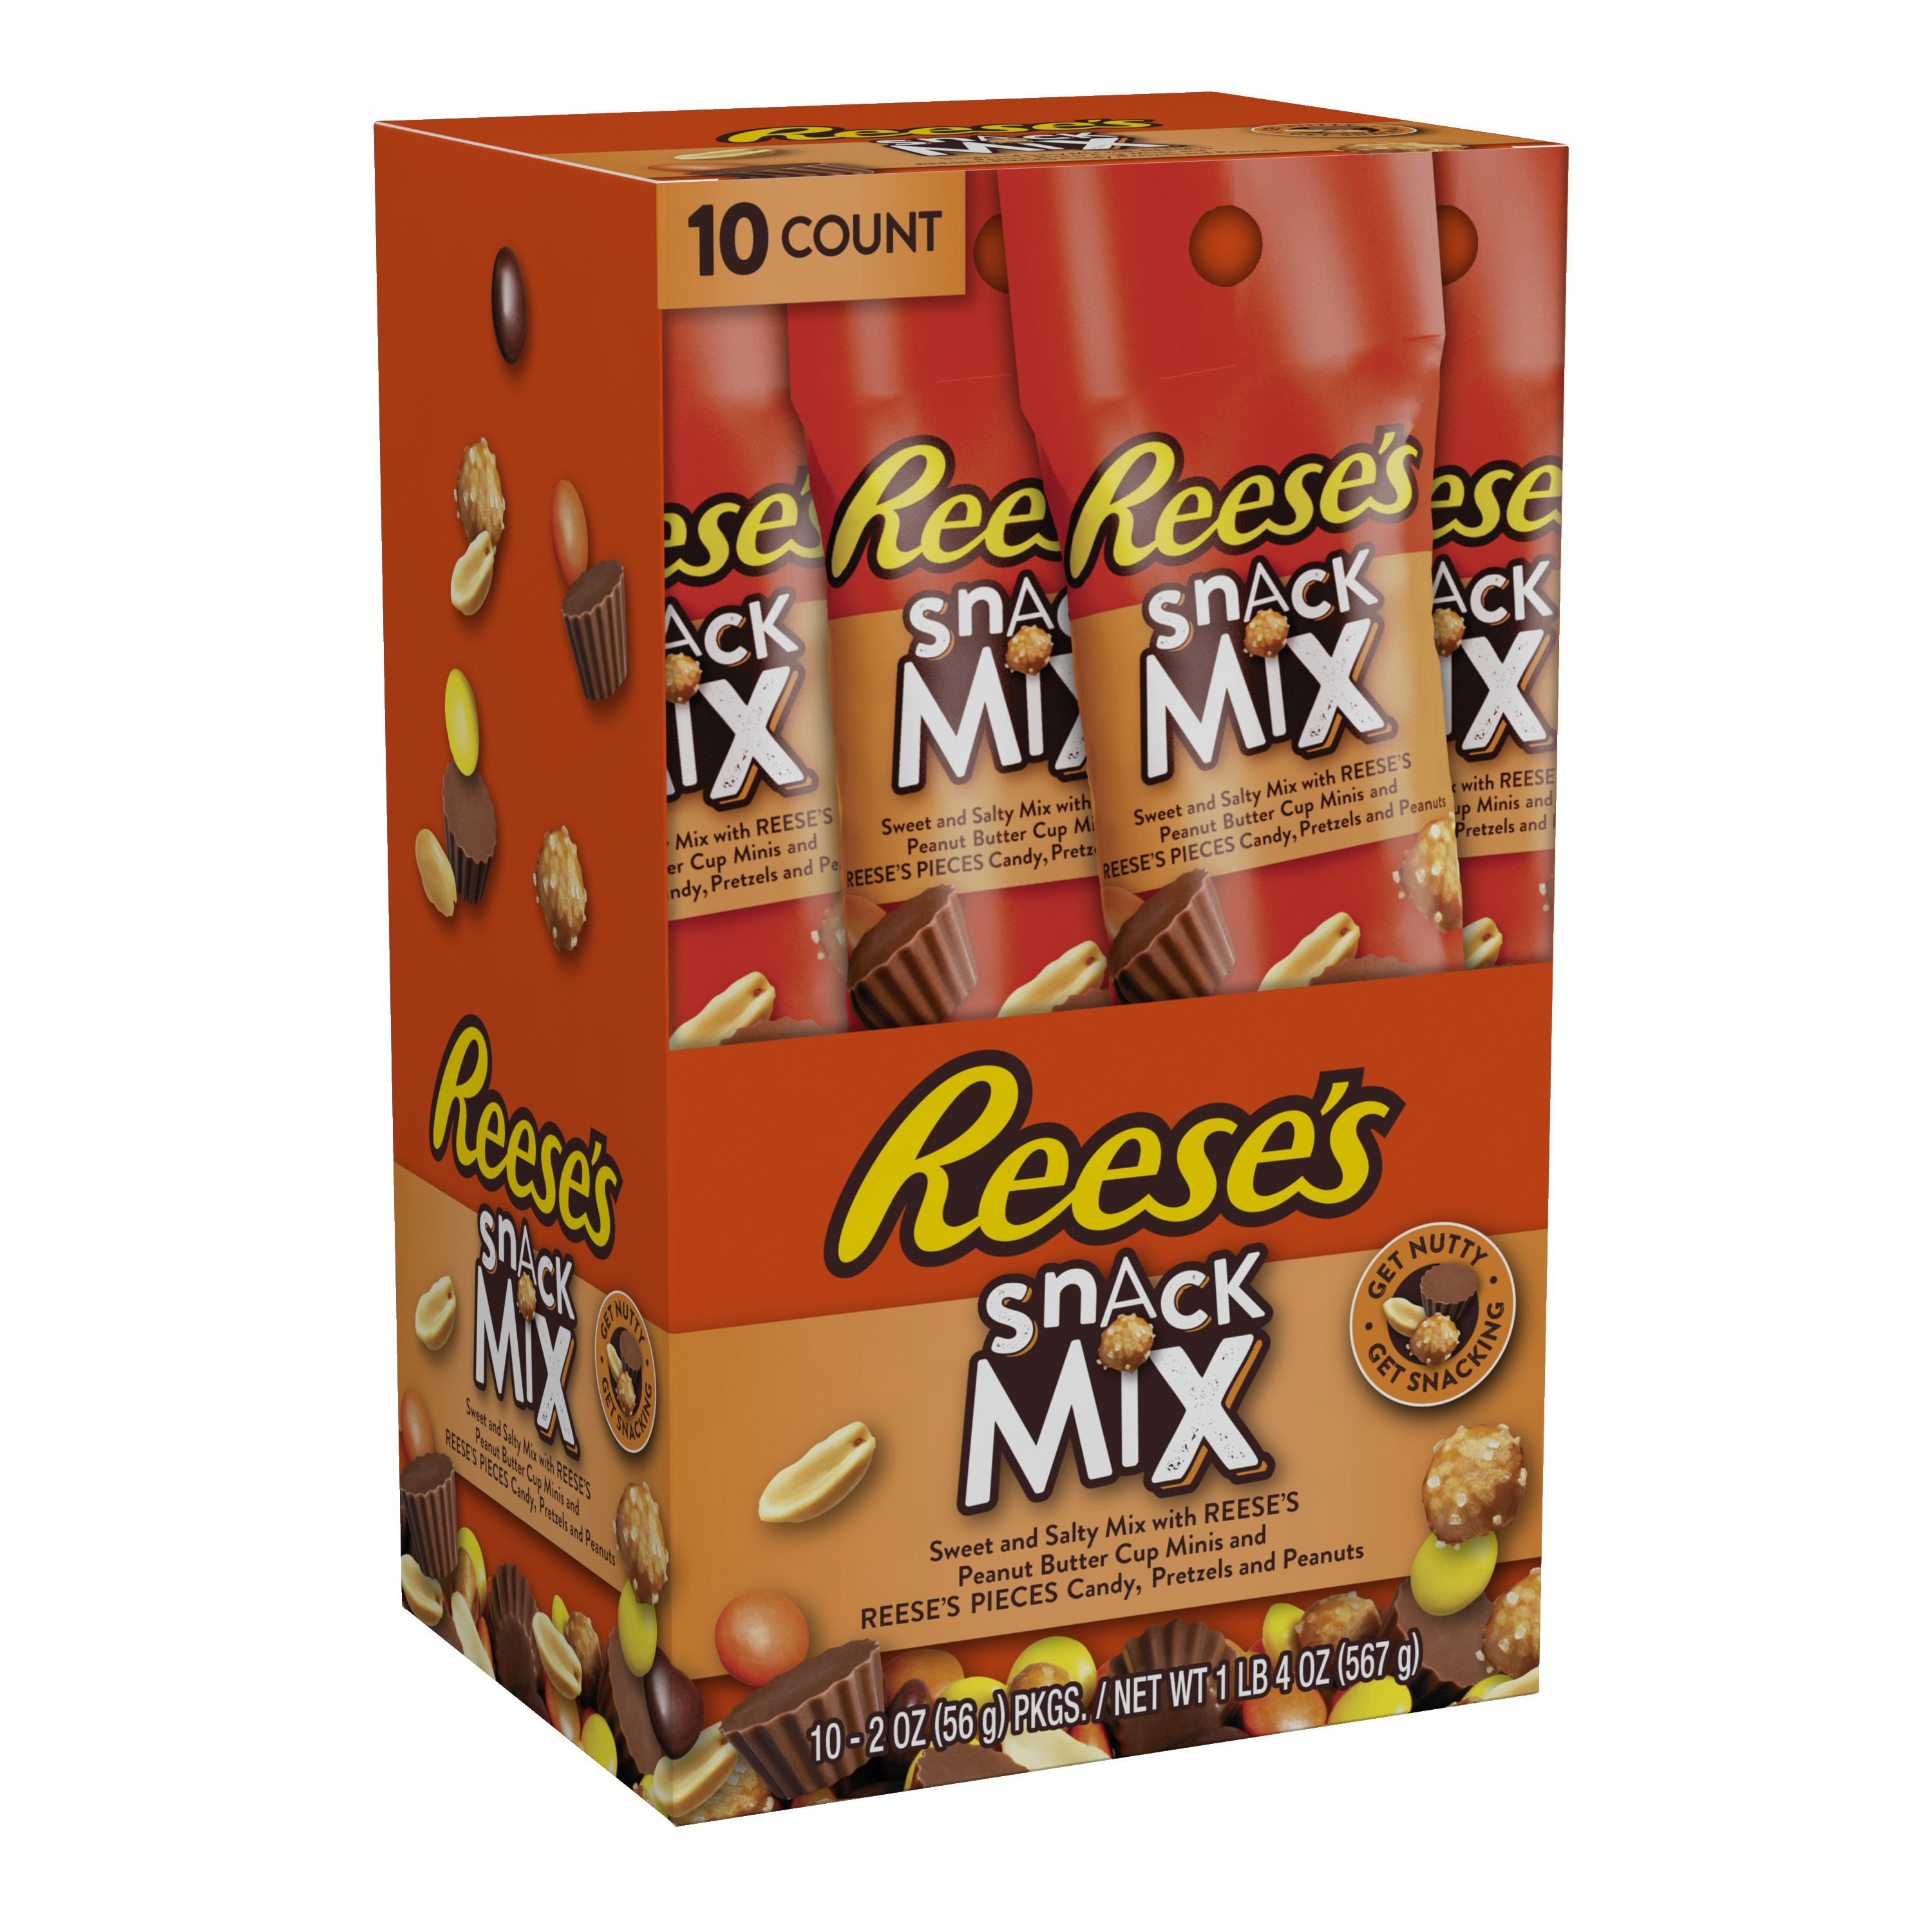 Reese's Peanut Butter Cups Minis, Pretzels & Peanuts Candy Snack Mix, 2 Oz., 10 Count